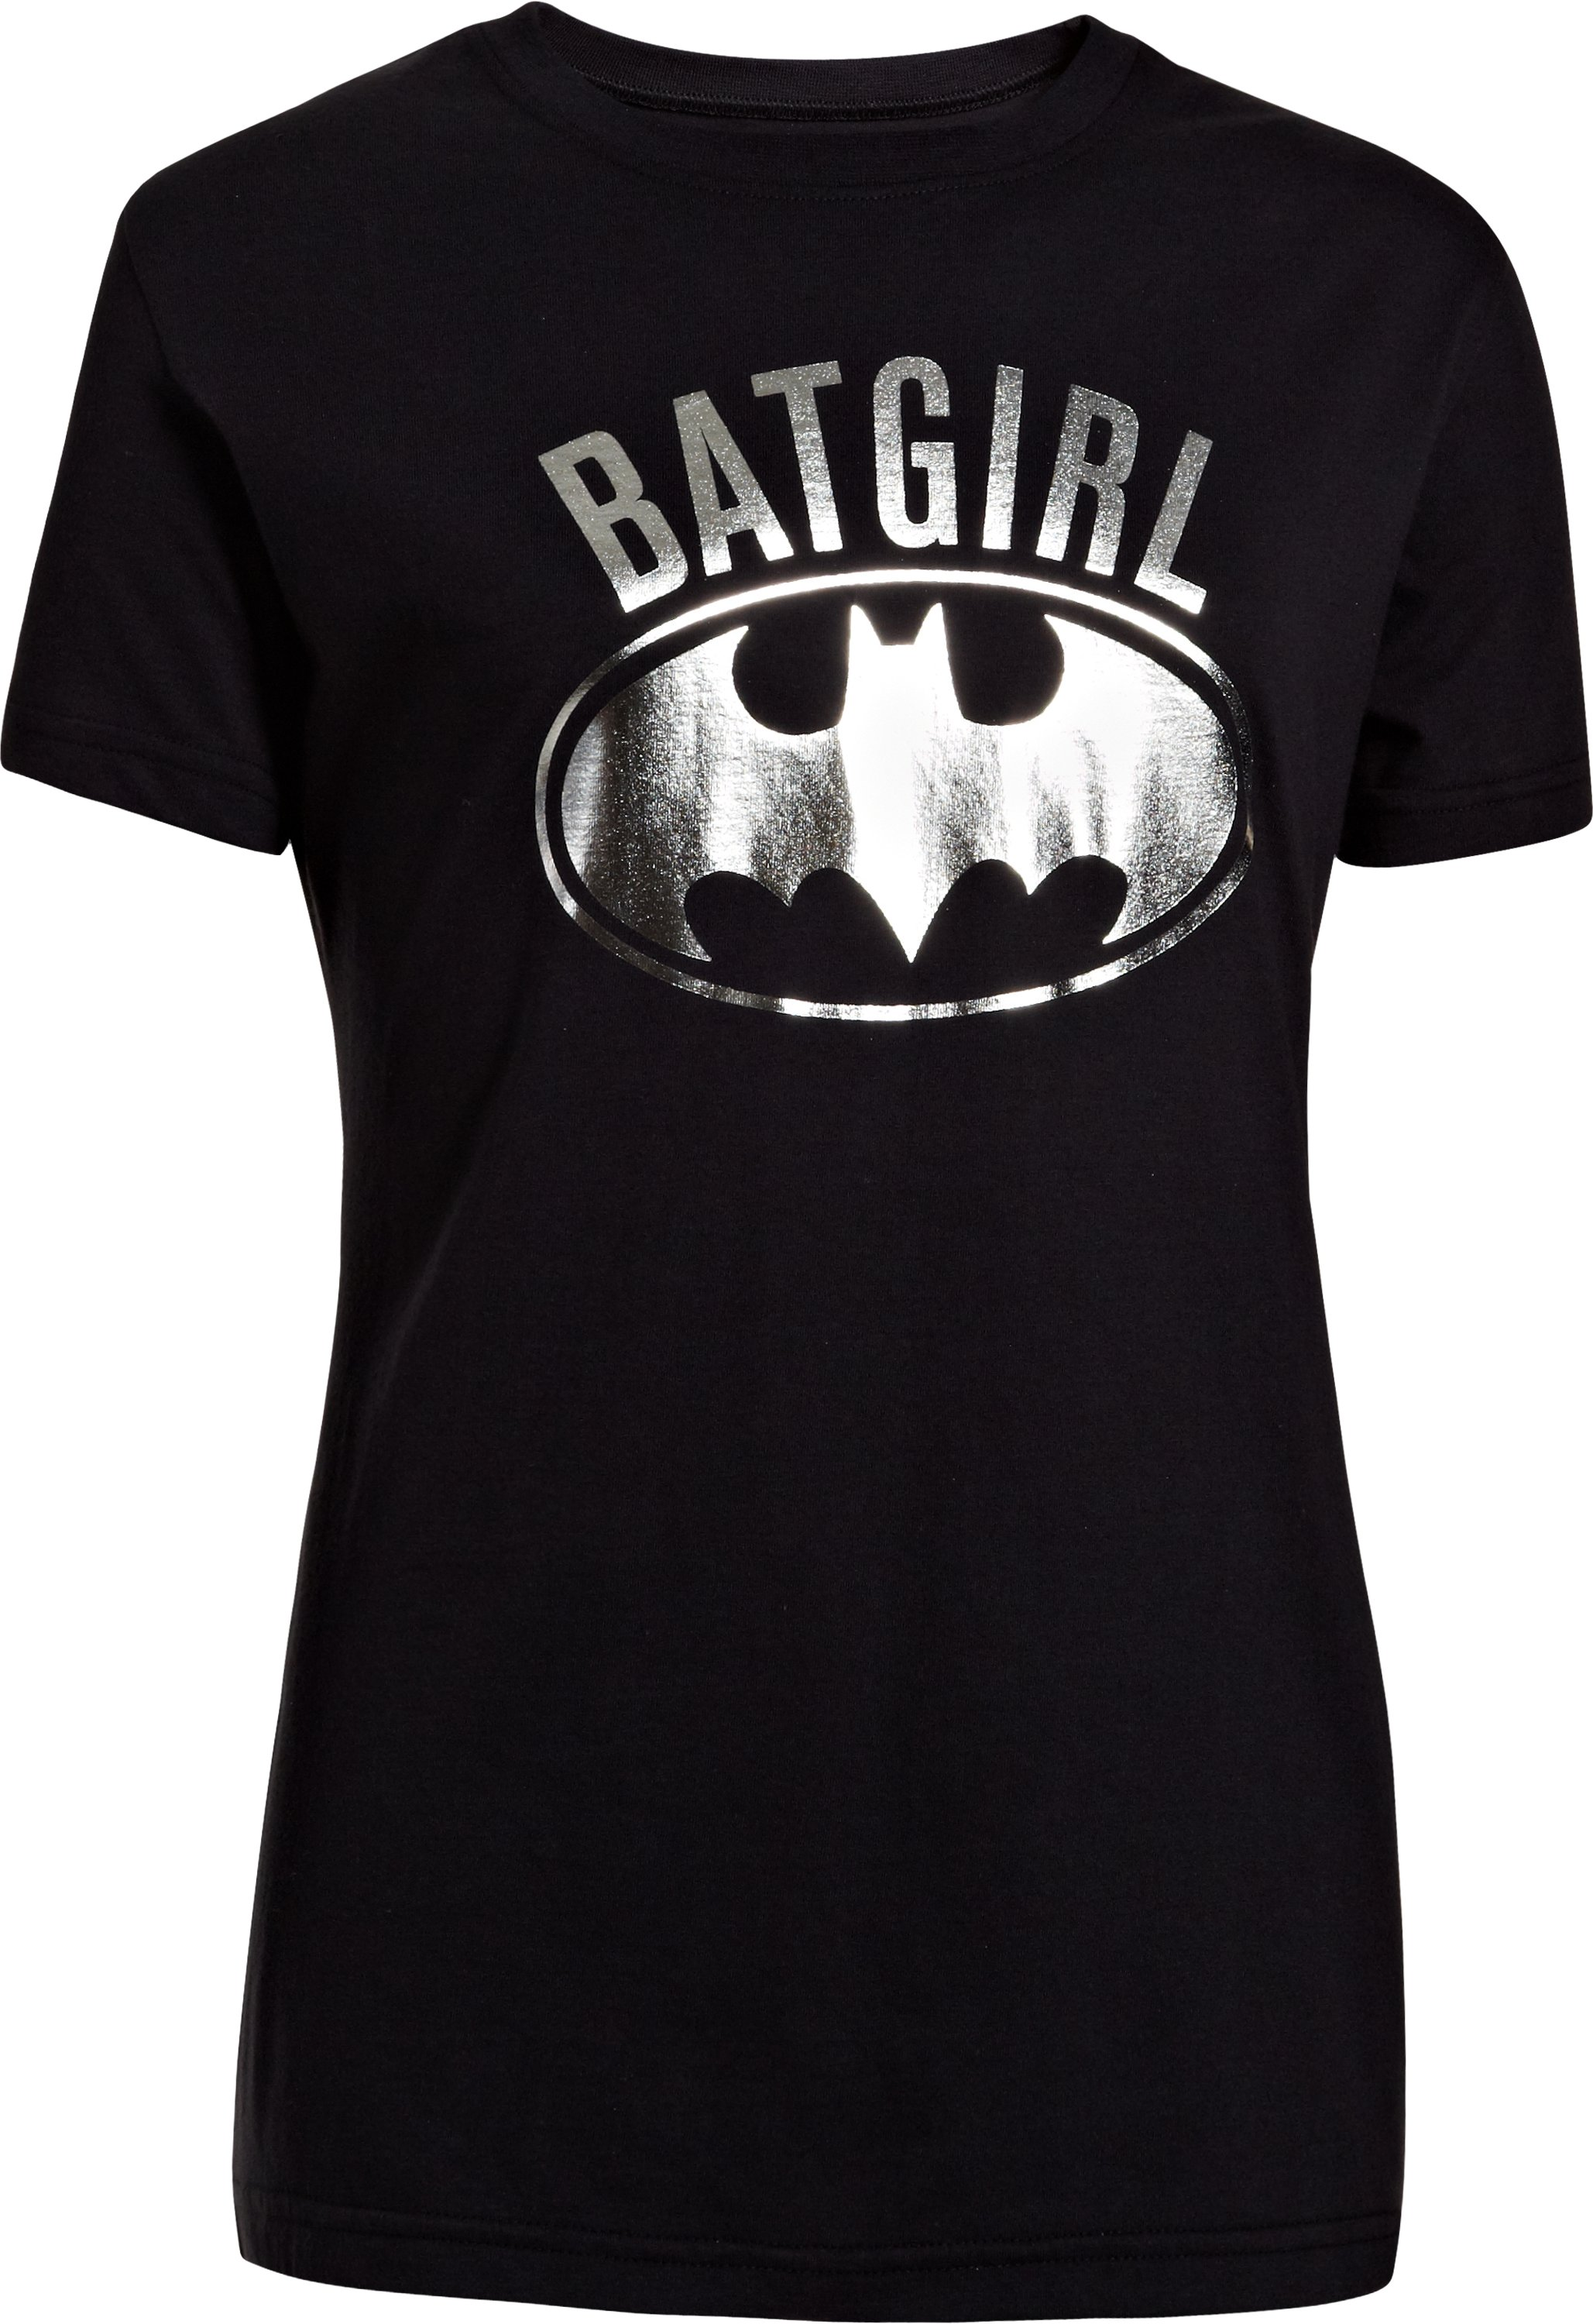 Girls' Under Armour® Alter Ego Batgirl Foil T-Shirt, Black